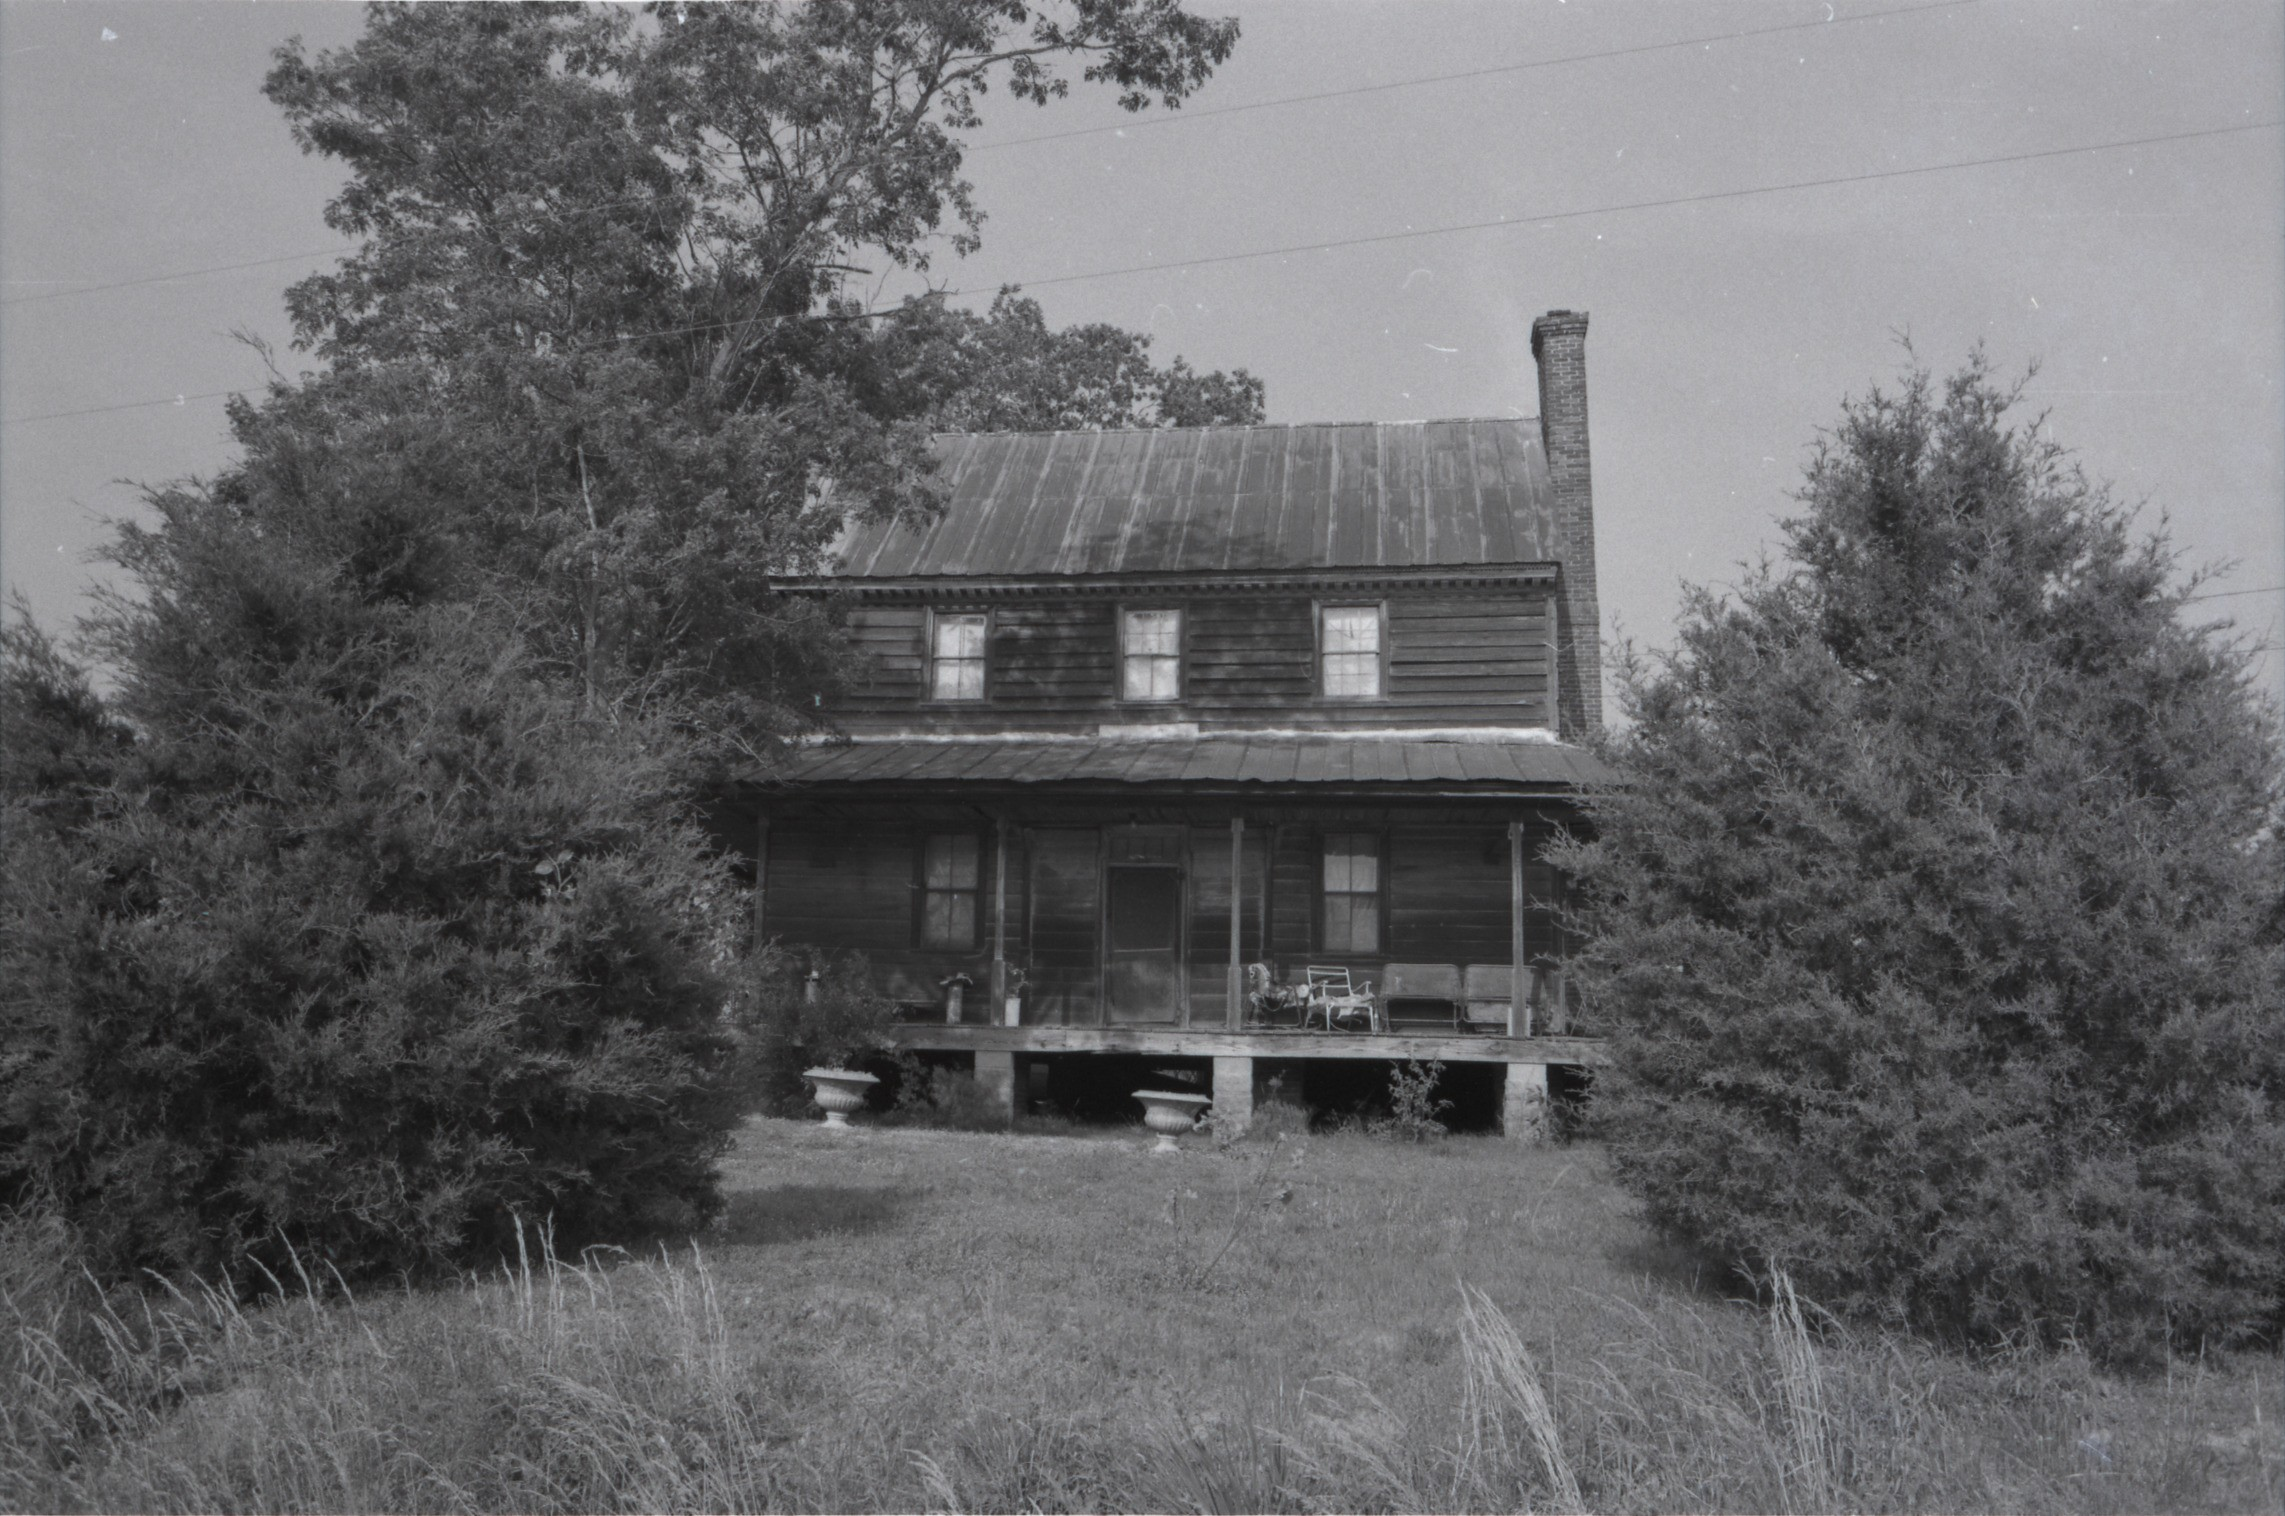 Black and white photograph of an older looking two story house.